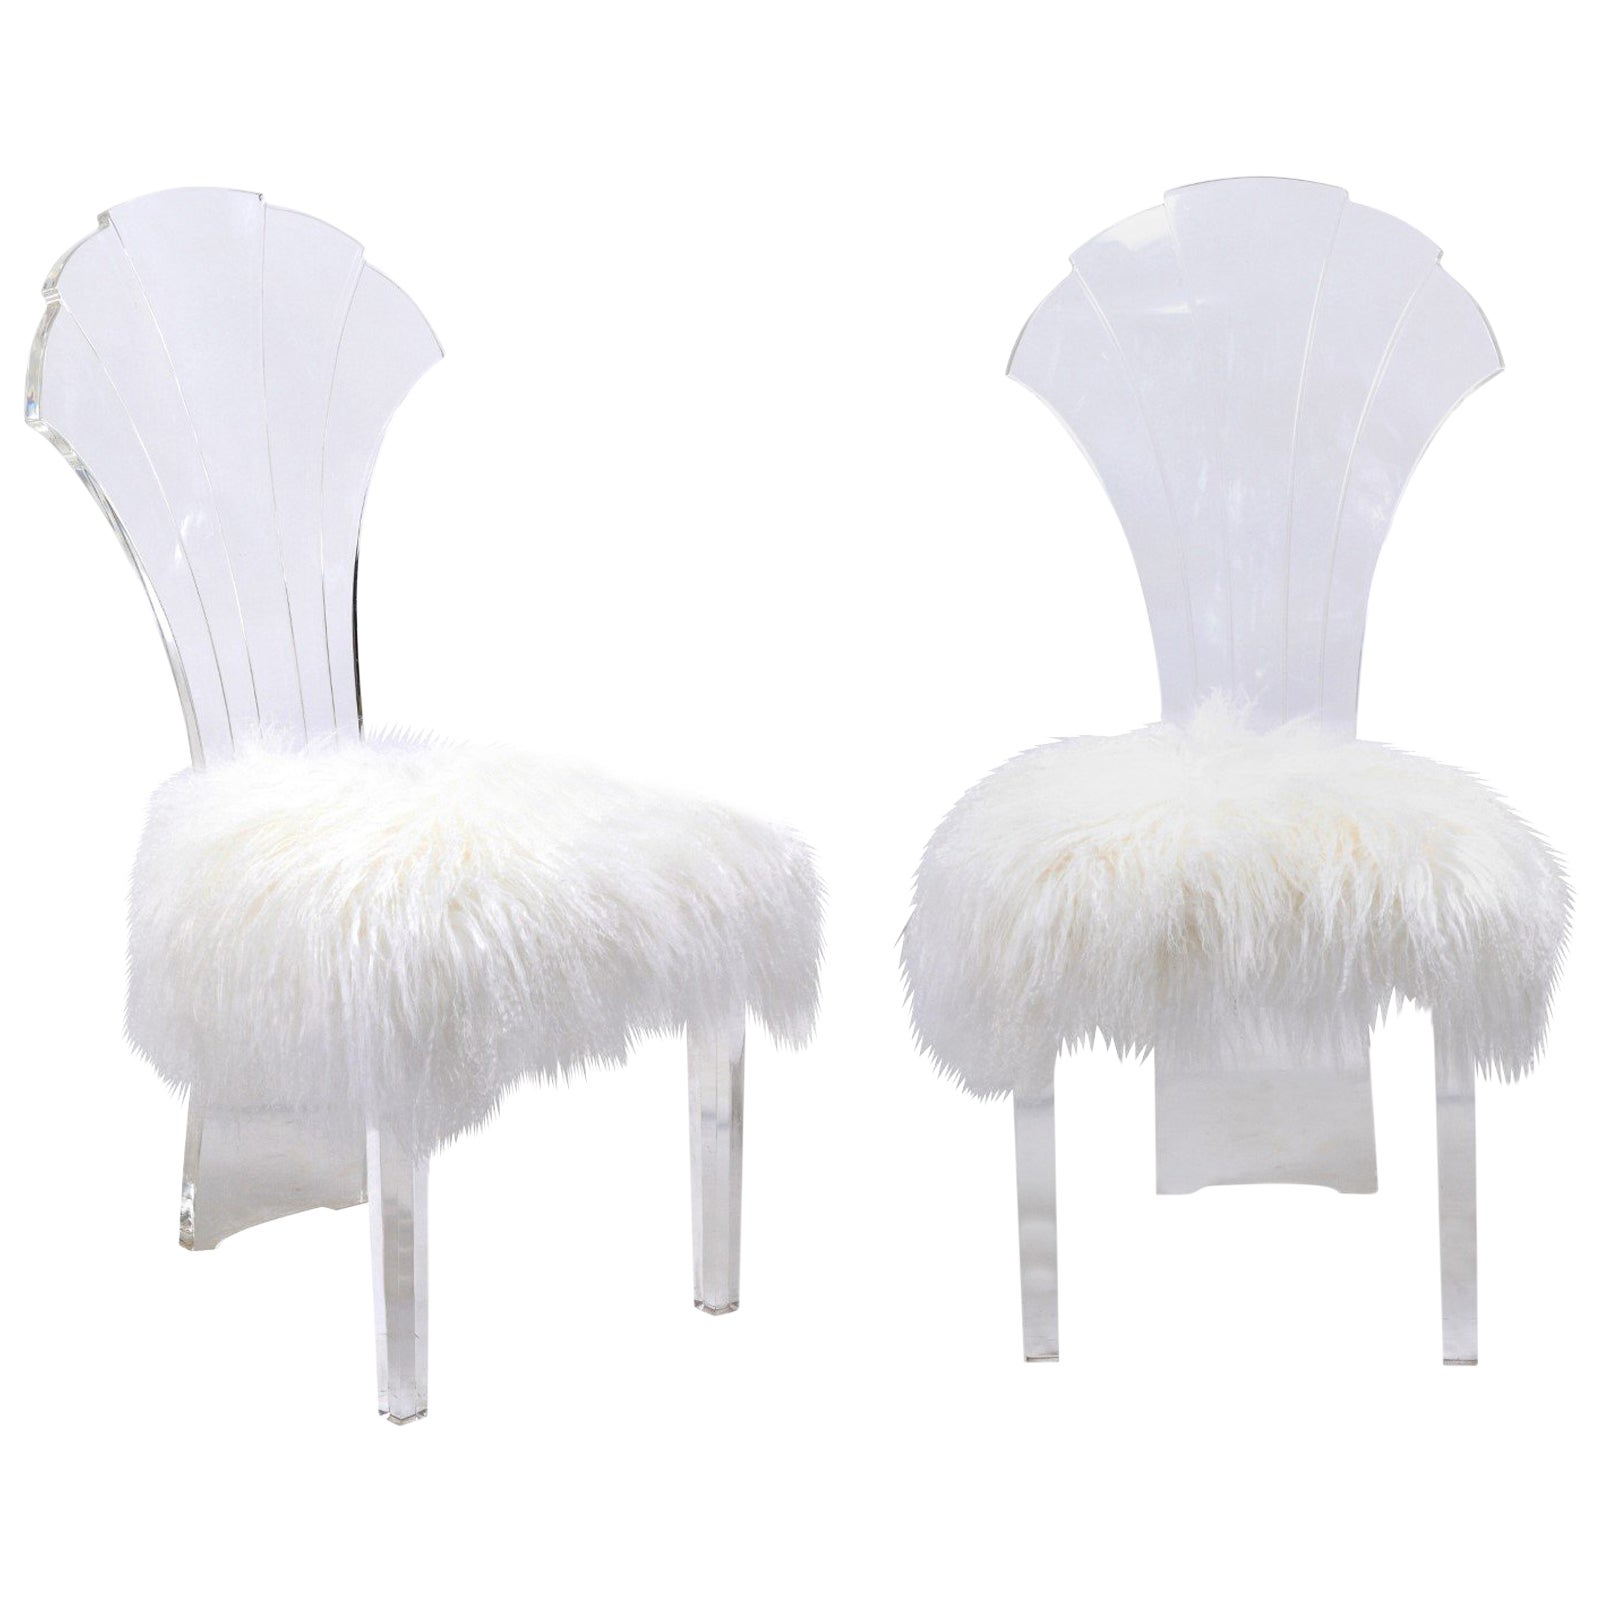 Lucite Chair Vintage Italian Midcentury Lucite Chair With Mongolian Fur And Scalloped Back